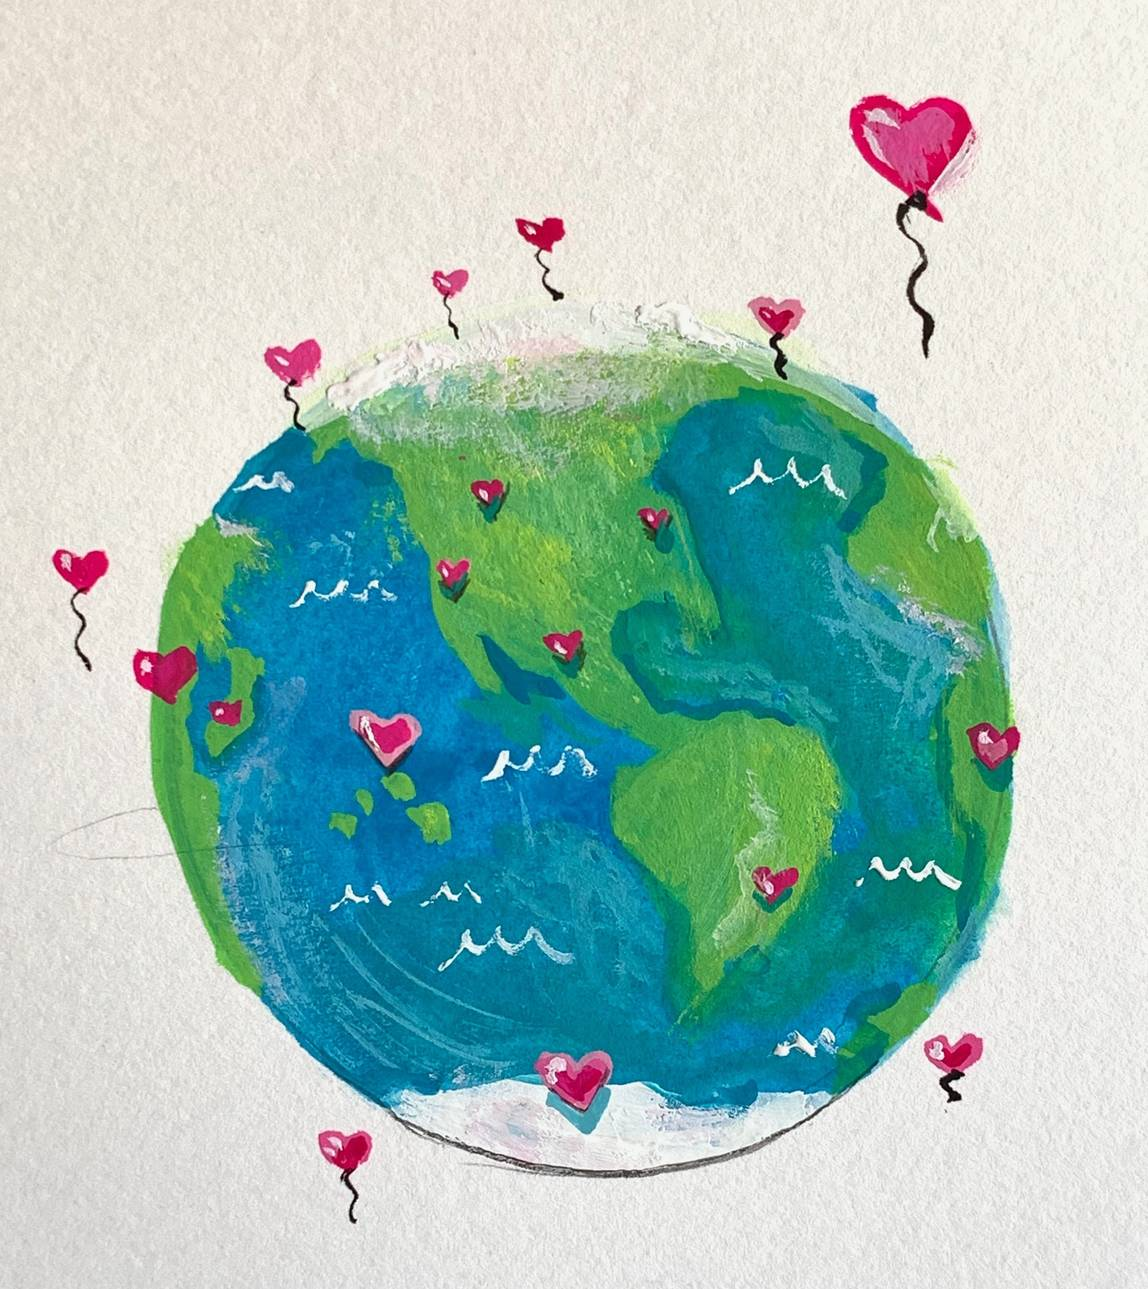 A host of heart balloons around the globe representing a world of engaged citizens